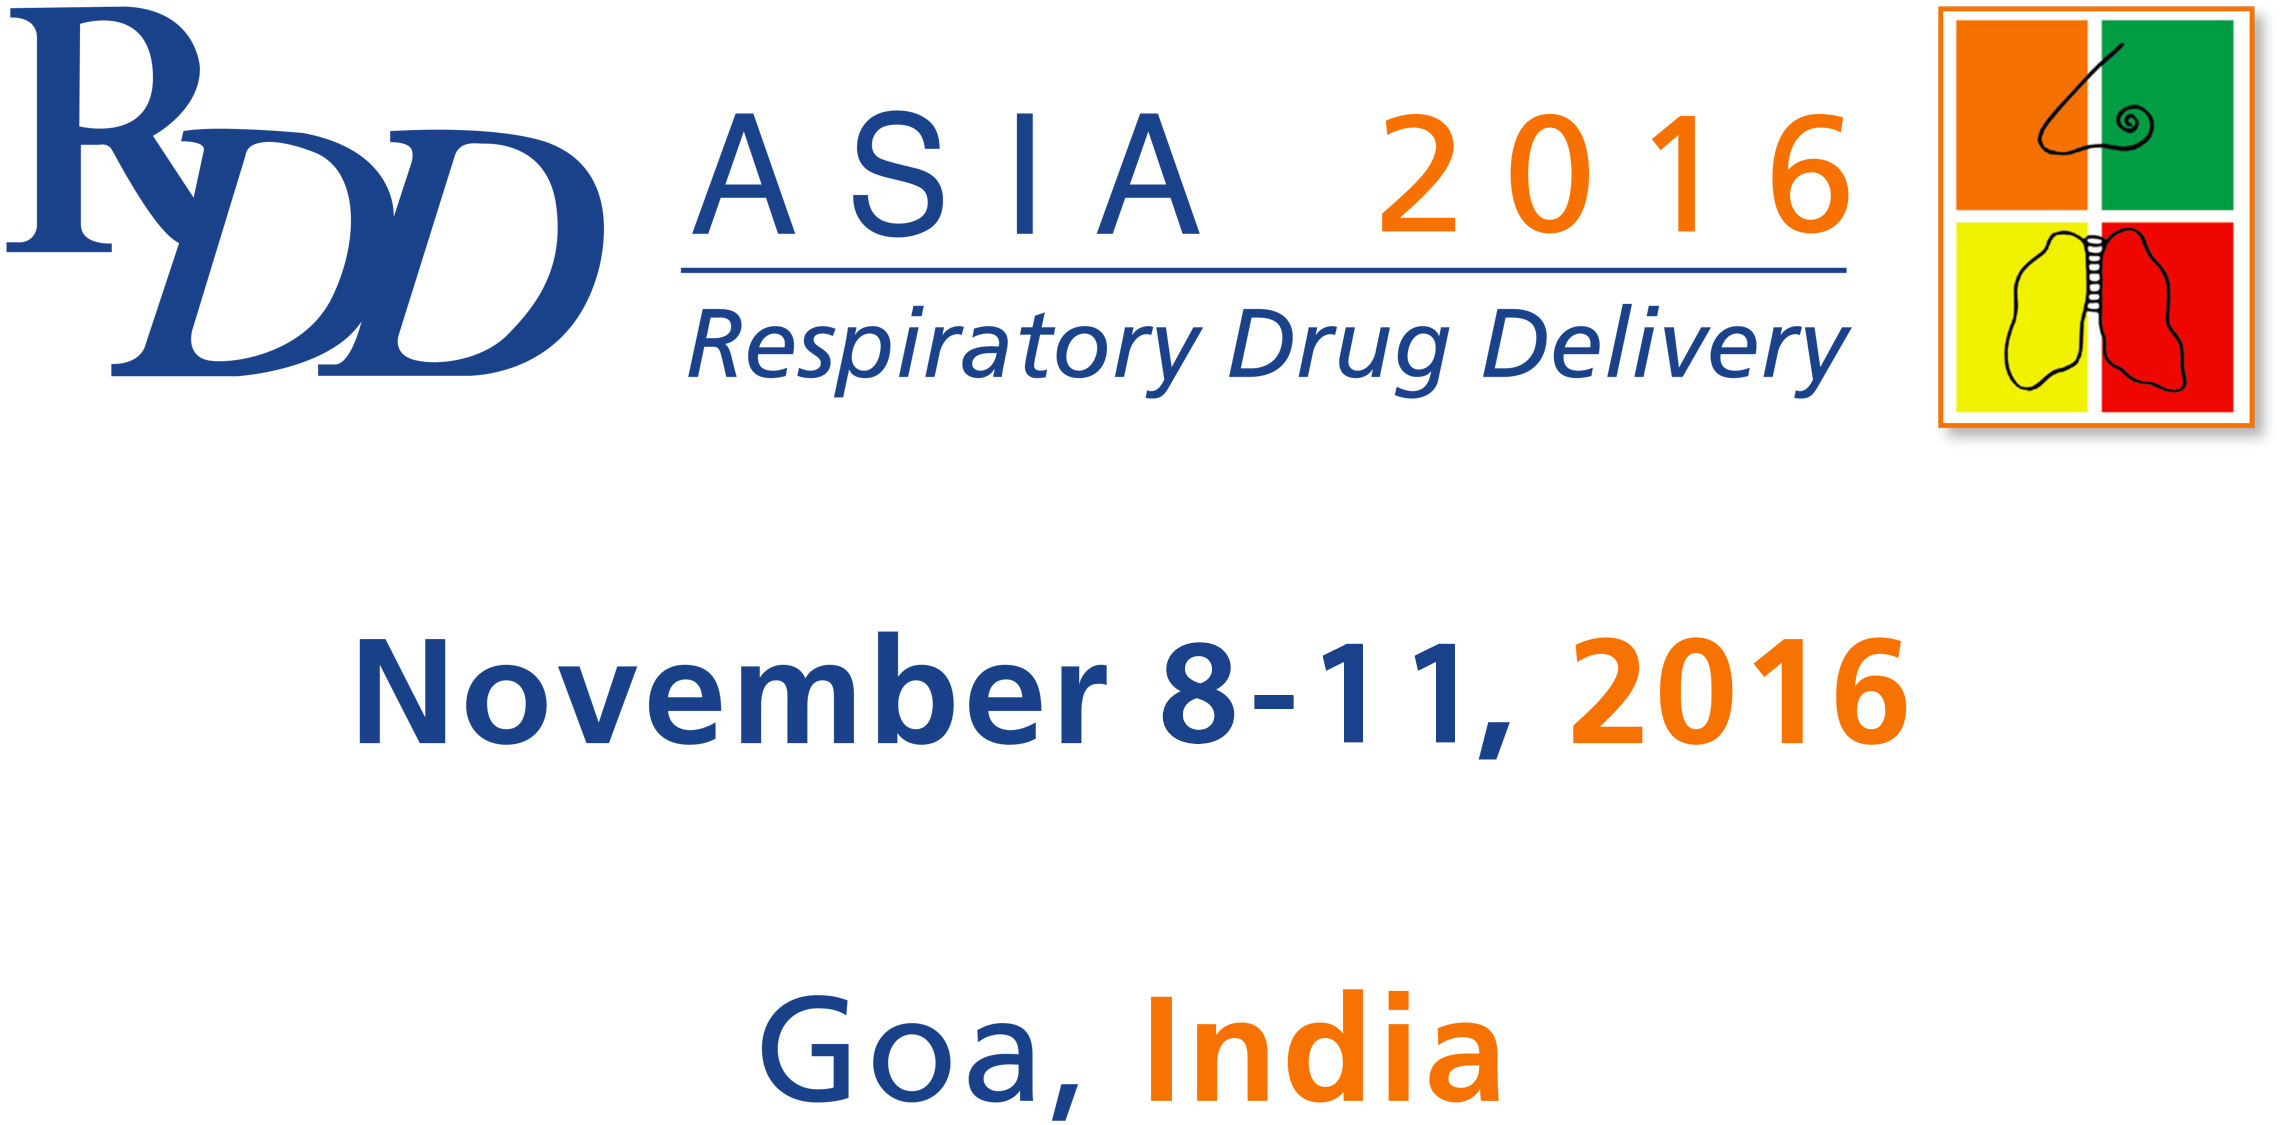 Aptar Pharma and RDD Online co-organize the second edition of RDD Asia, in Goa, India